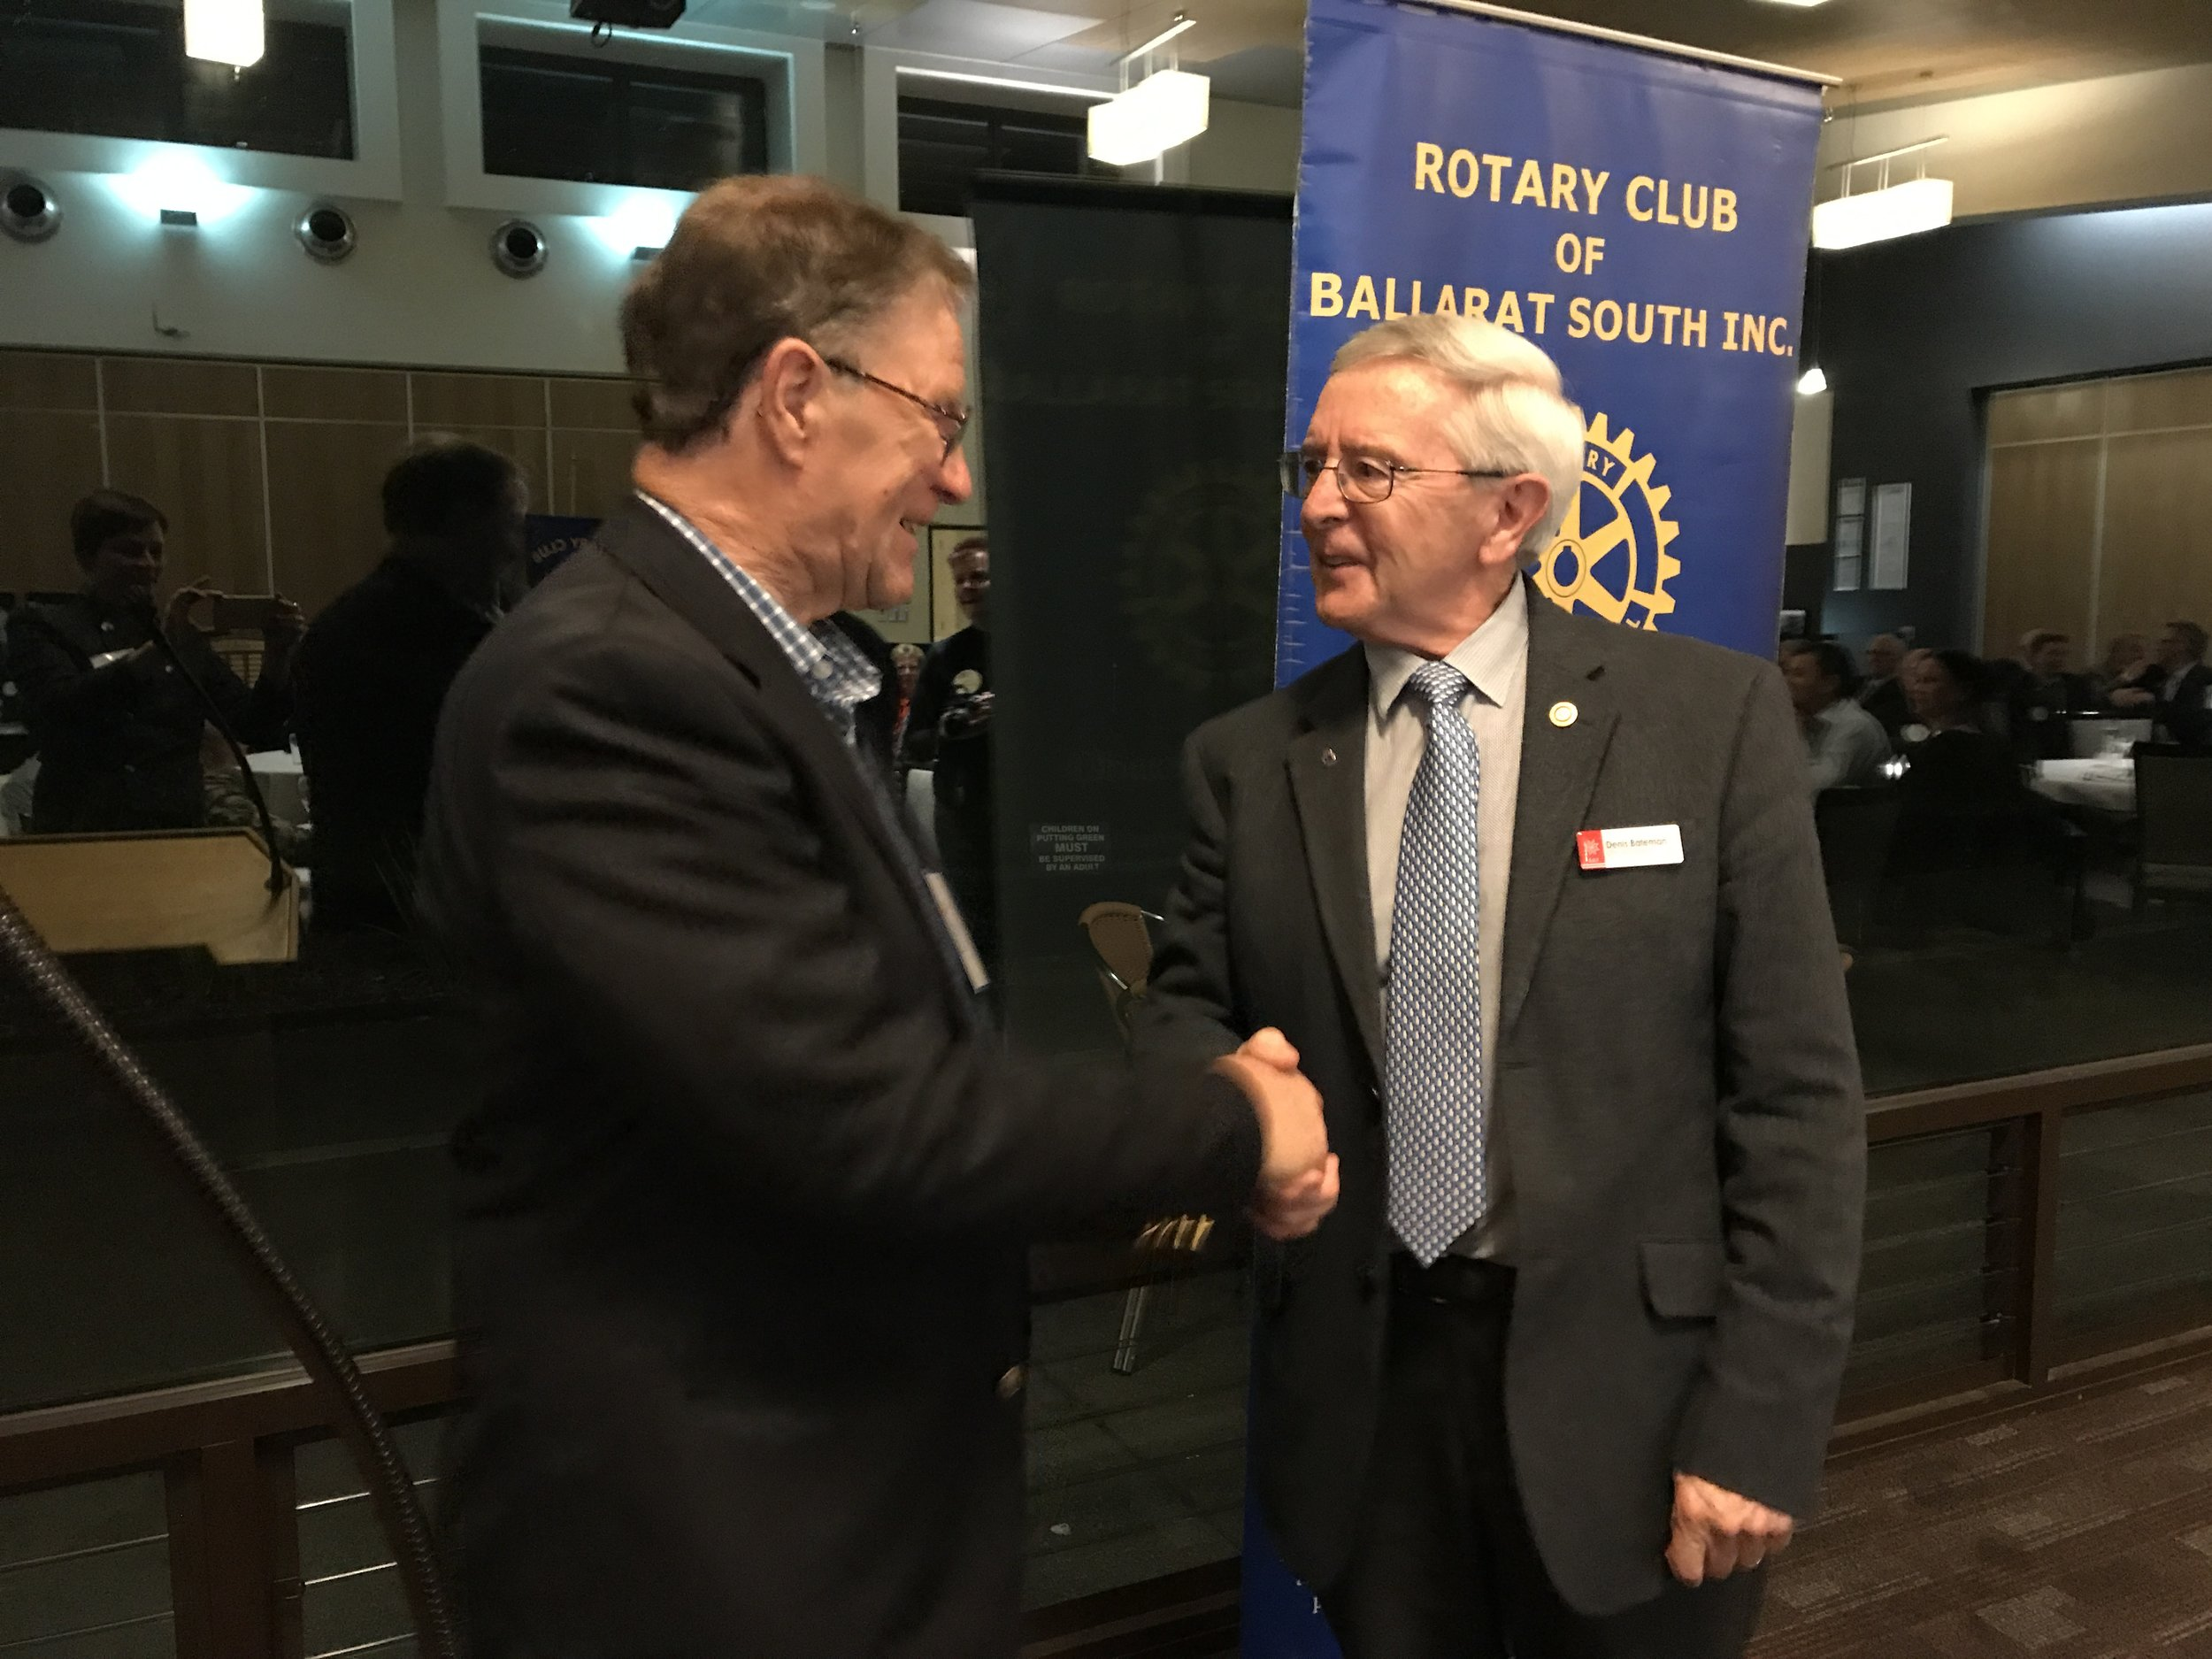 Dr Tony Cole being congratulated on his prize by Denis Bateman